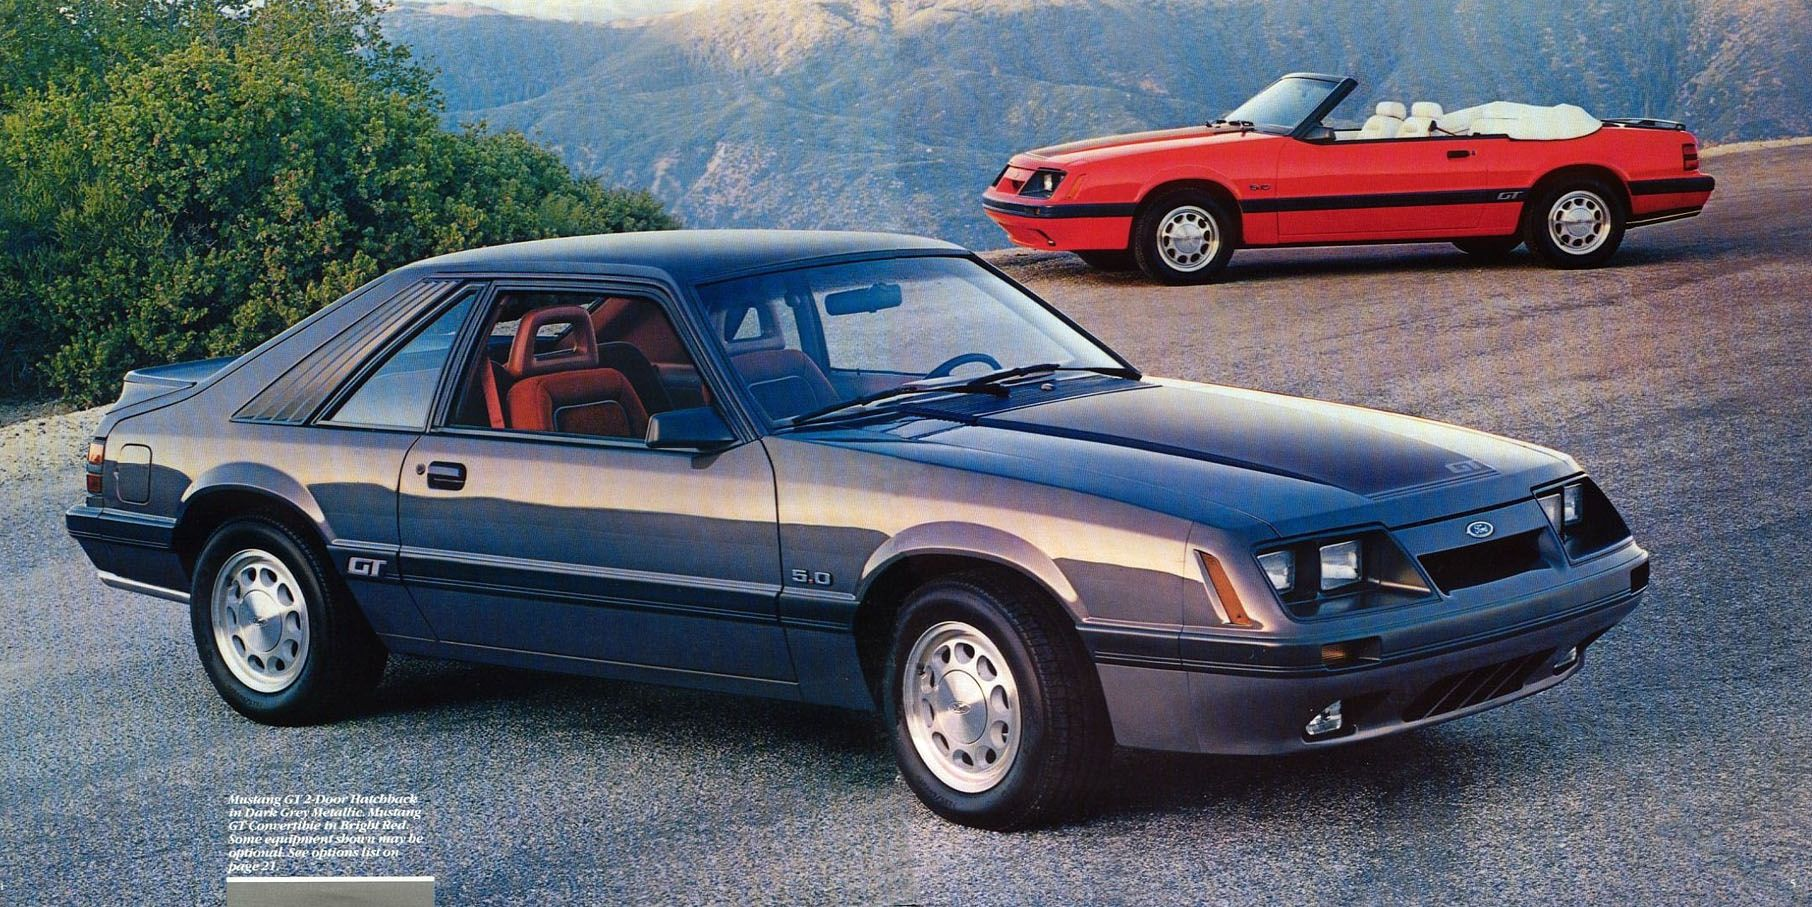 86 mustang gt pics root ford mustang 1986 ford mustang 1986 ford mustang brochure prev